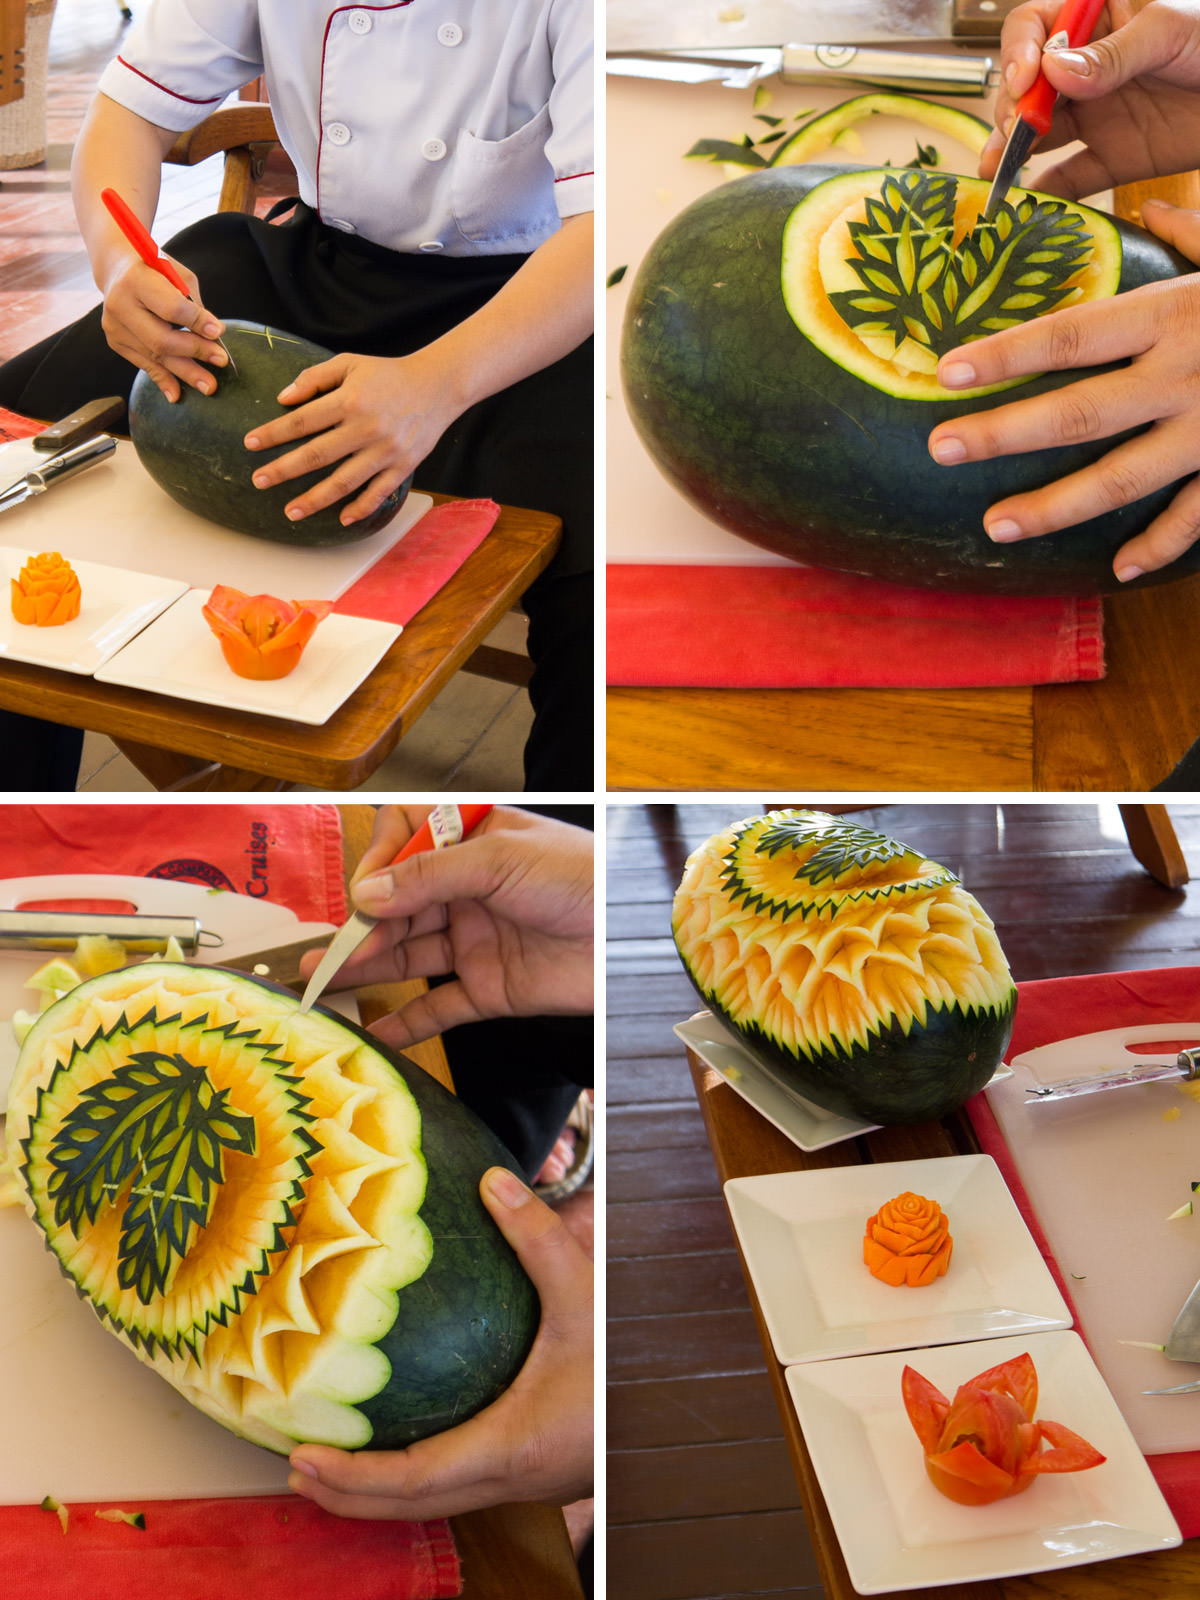 Carving a melon